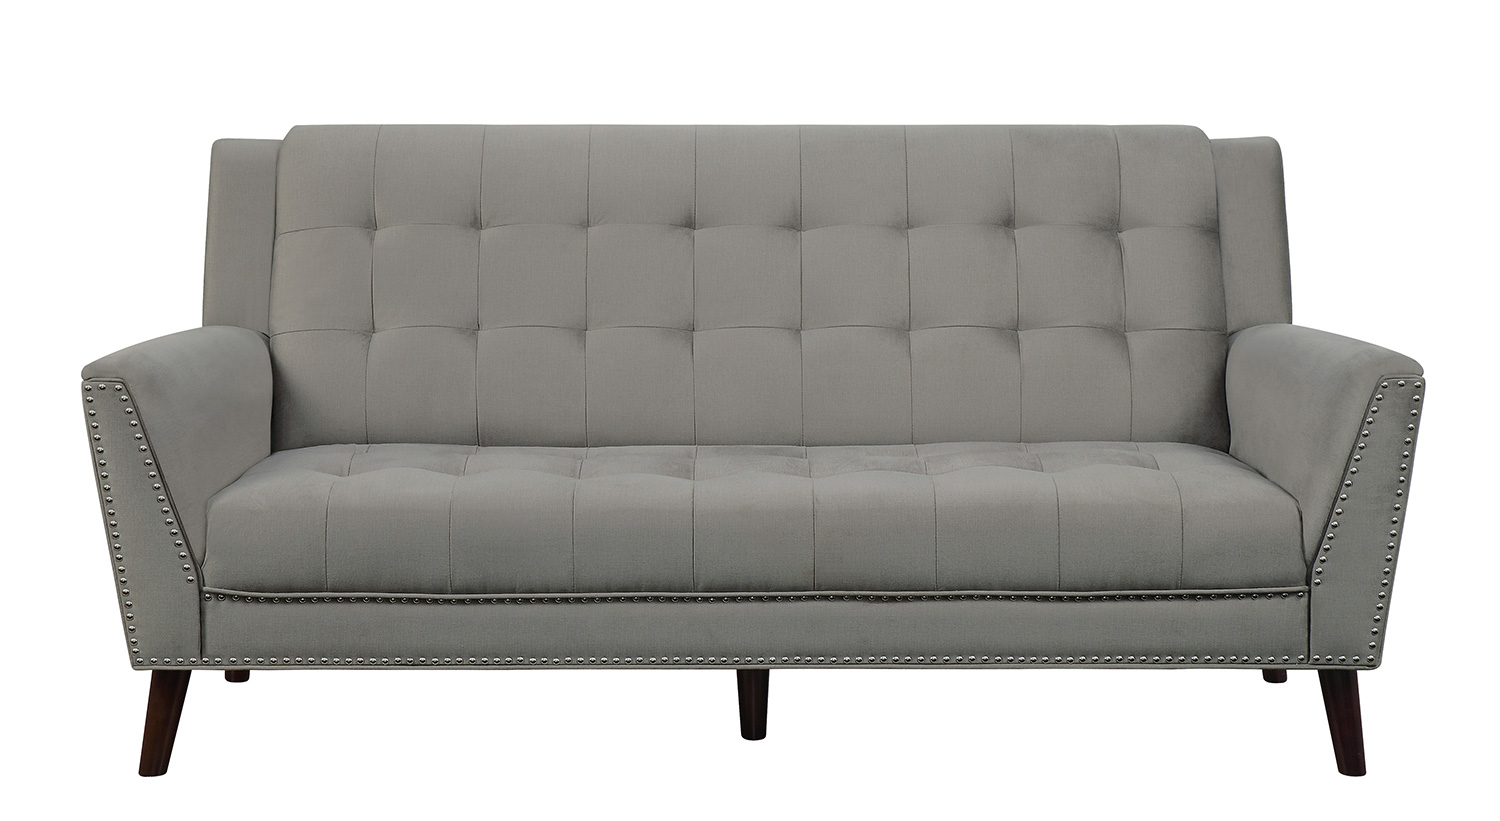 Homelegance Broadview Sofa - Brown